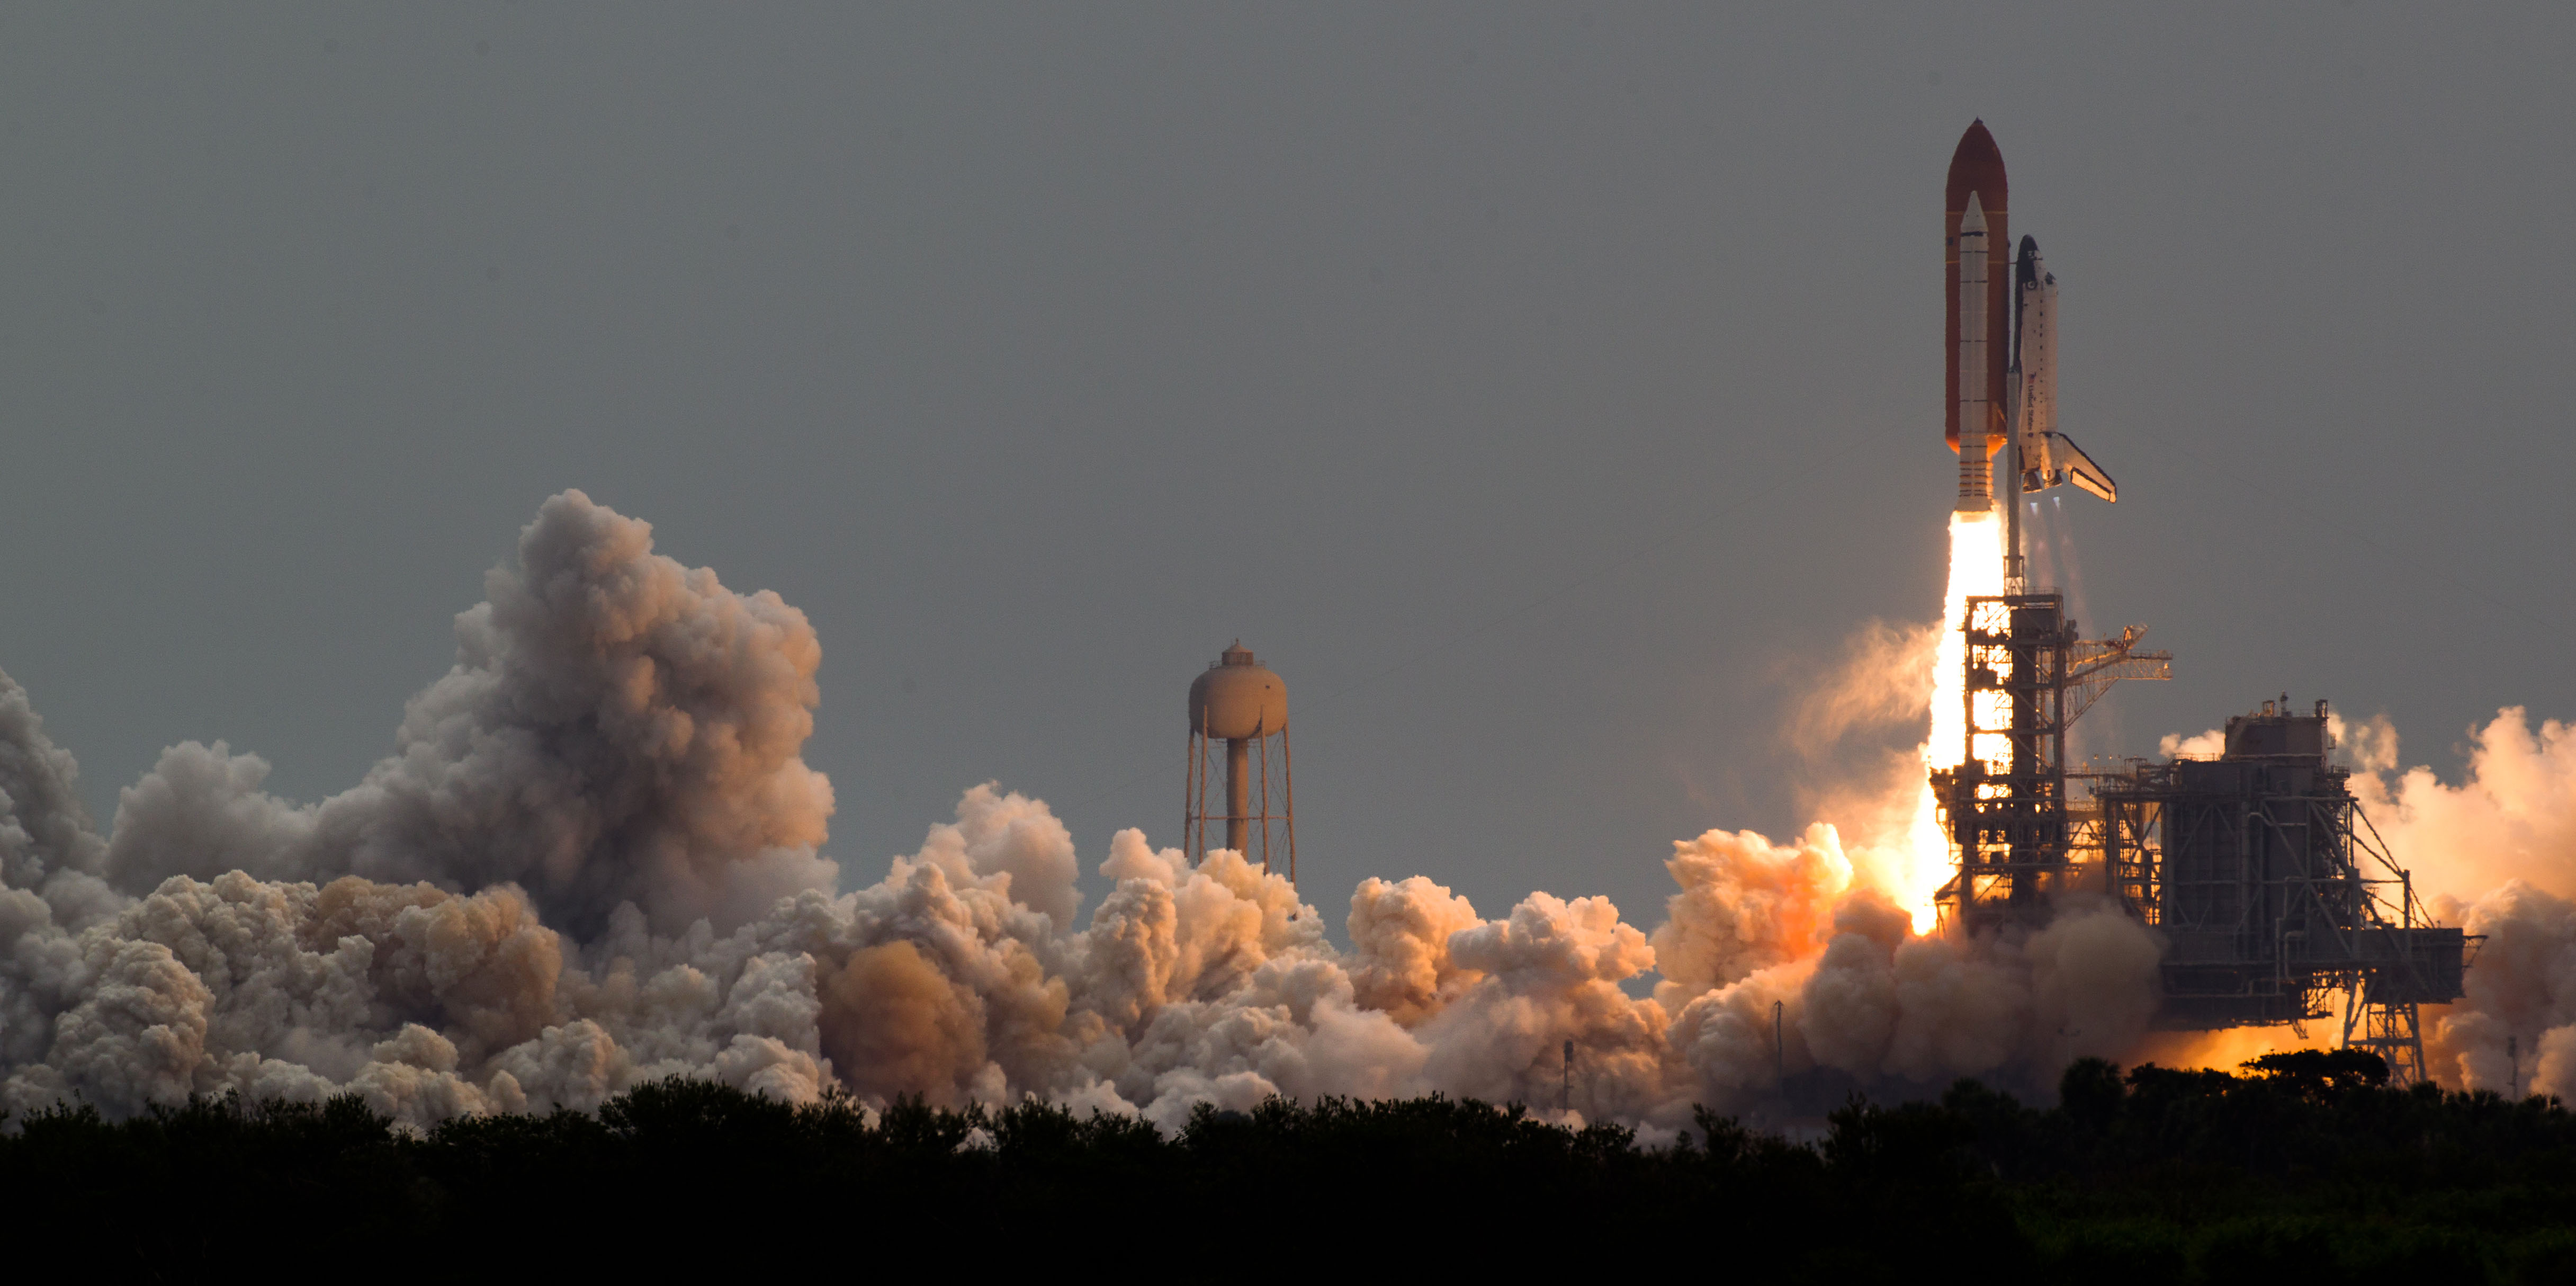 Space shuttle launch photo